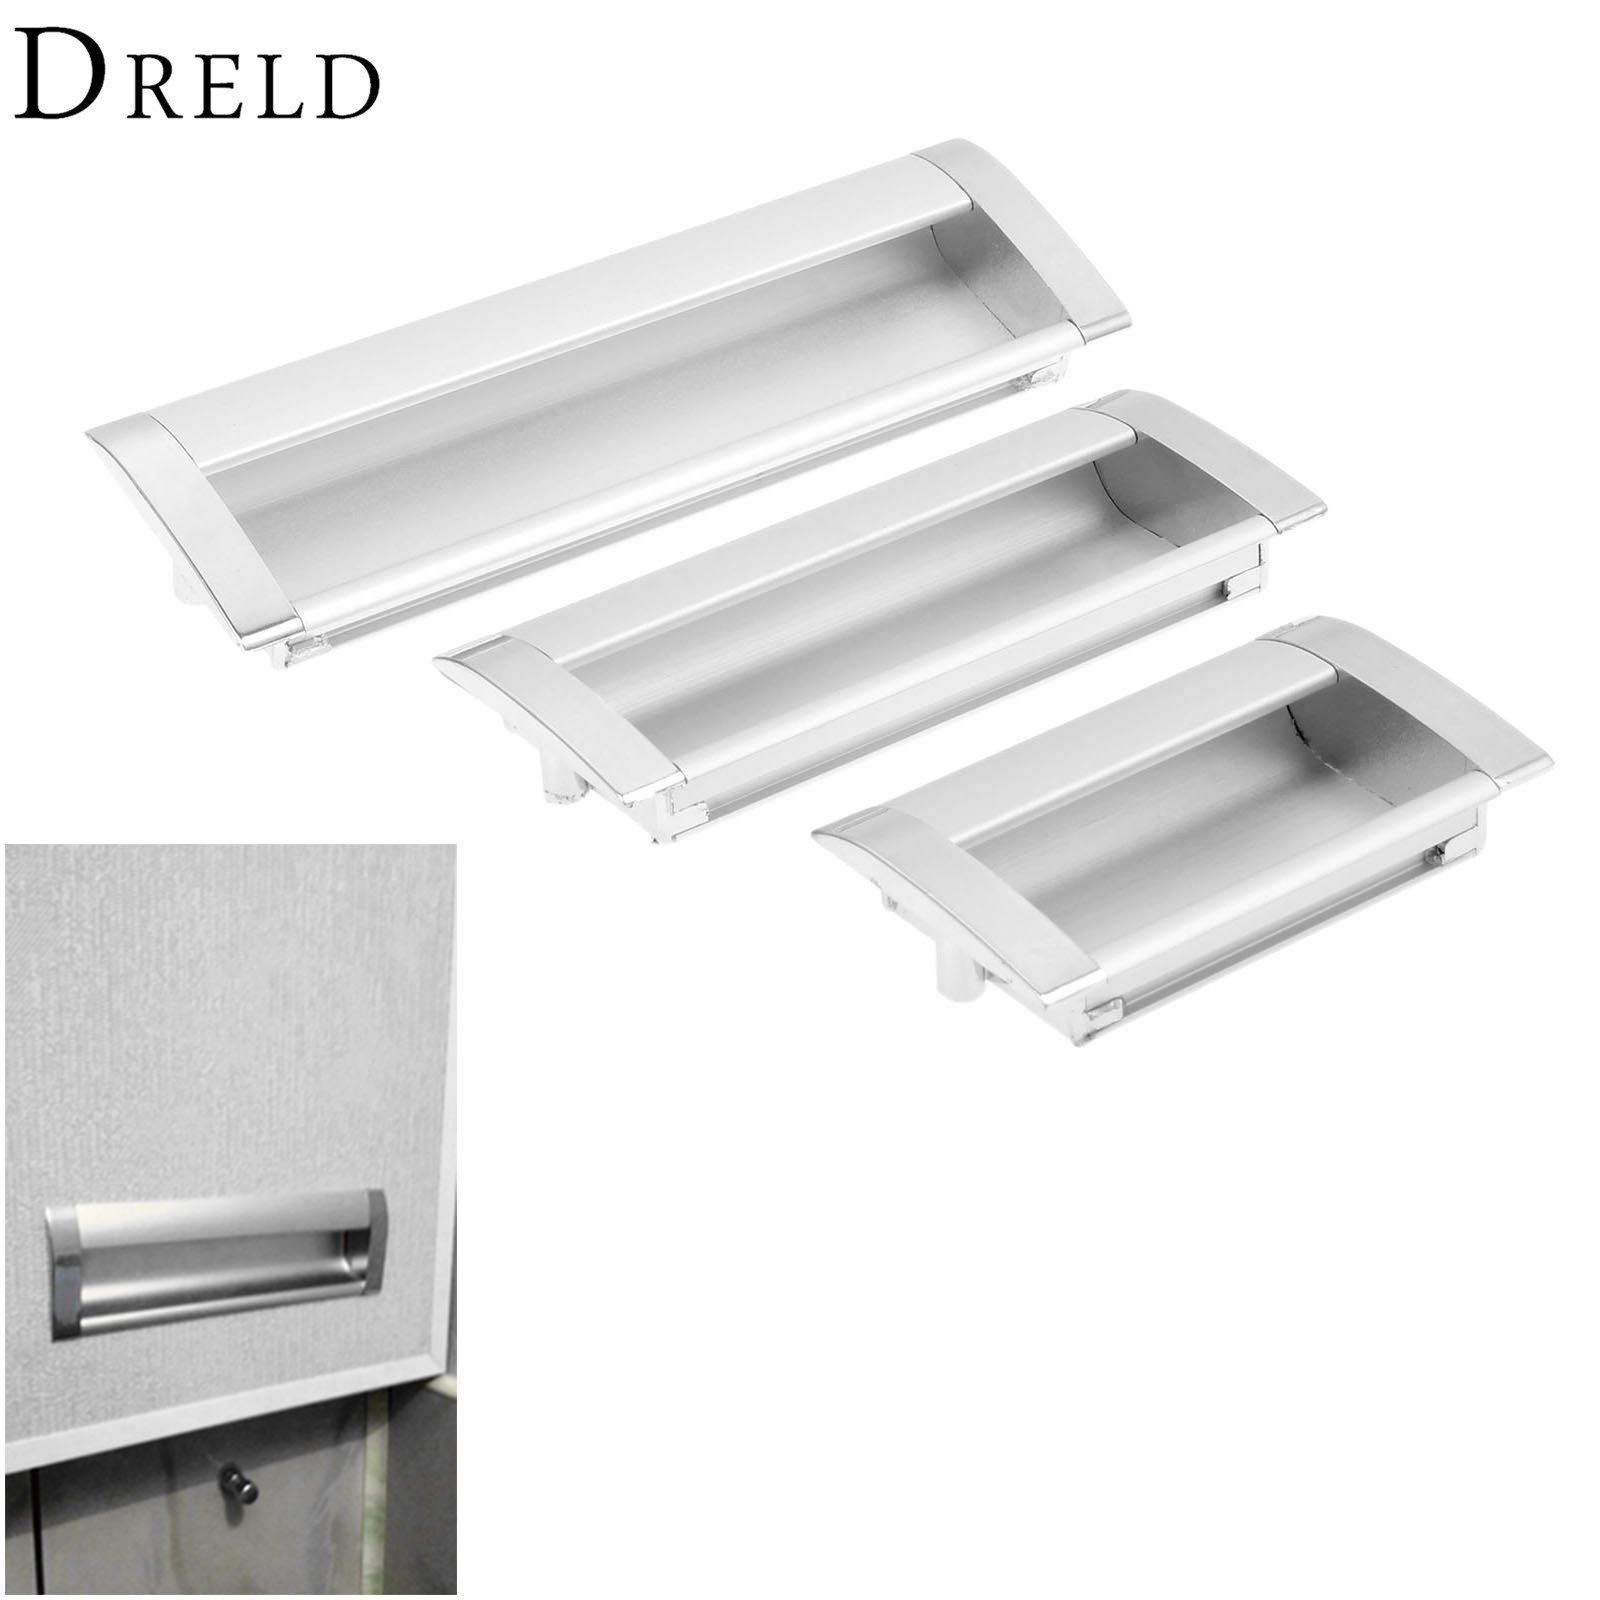 DRELD Furniture Handles Hidden Recessed Flush Pull Zinc Alloy Concealed Handle Sliding Window Door Cabinet Knobs and Handles